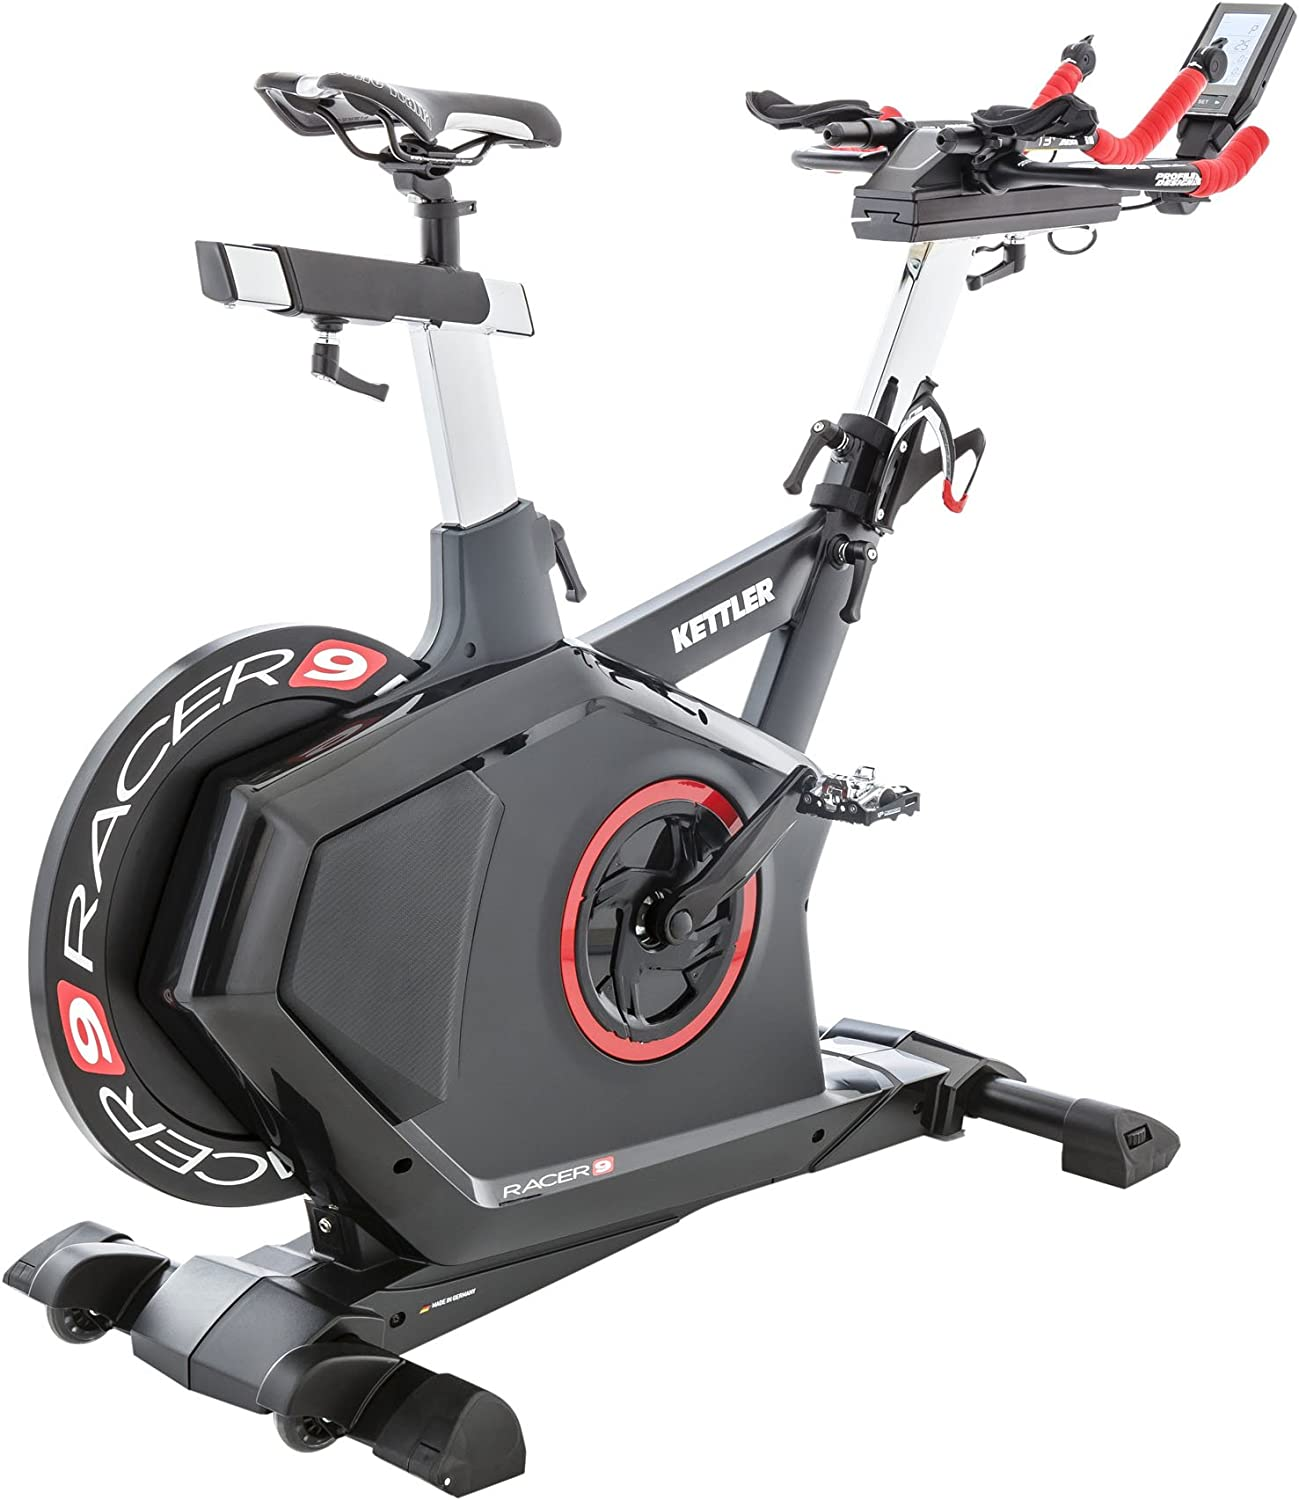 Kettler Racer 9 Spin Bicycle - Bicicletas estáticas (Spin Bicycle ...